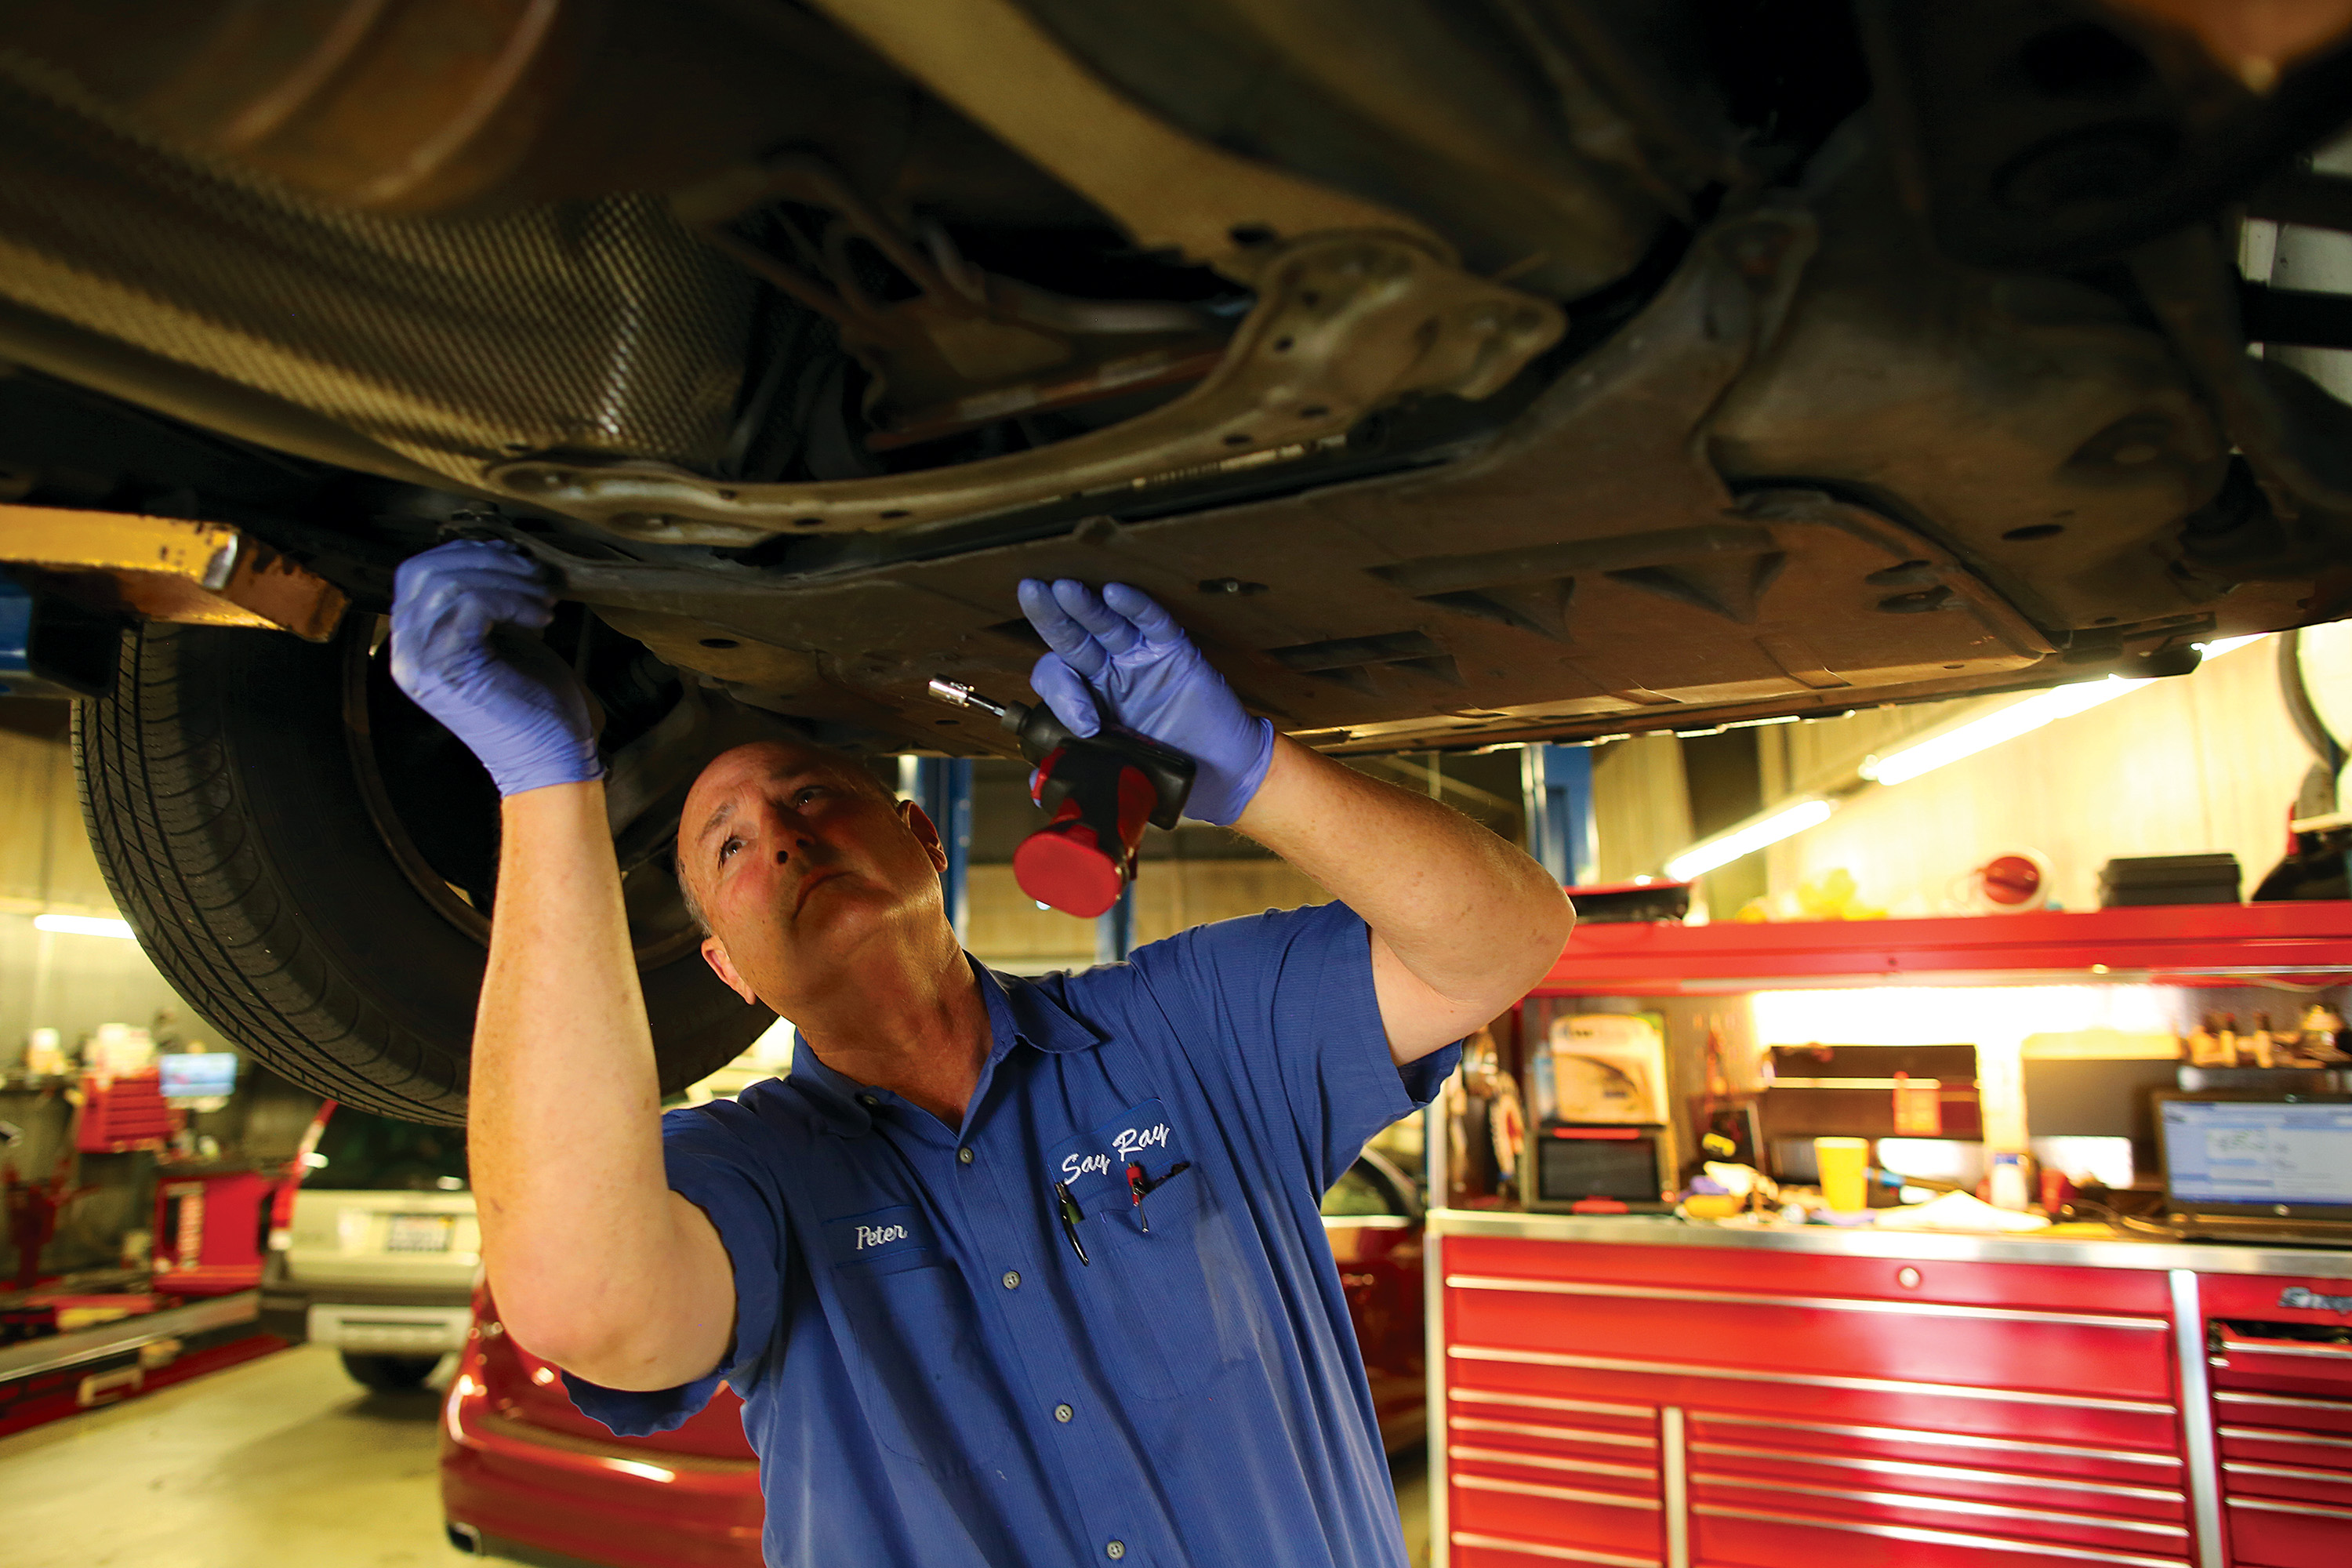 Peter Longanecker, owner of autmotive repair shop Say Ray, works on a Volvo on Oct. 1. Photo by Sammy Dallal.